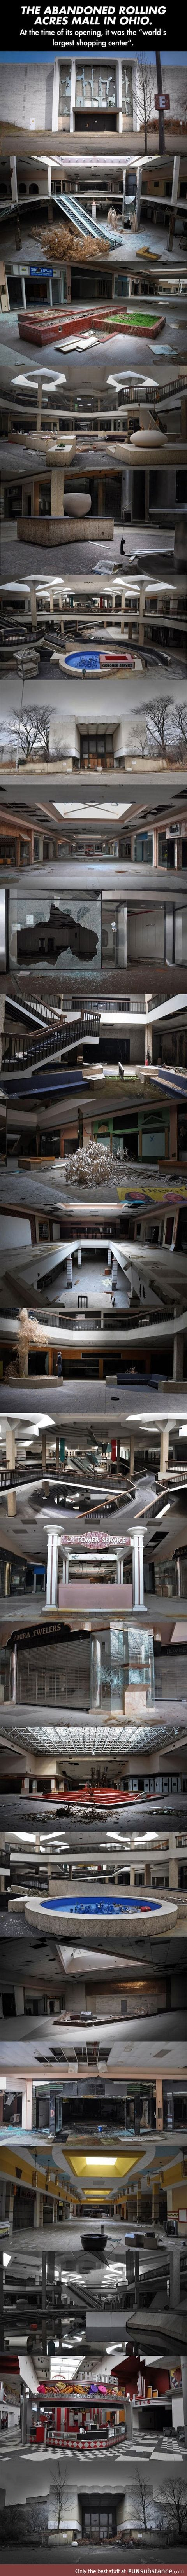 Abandoned mall in ohio